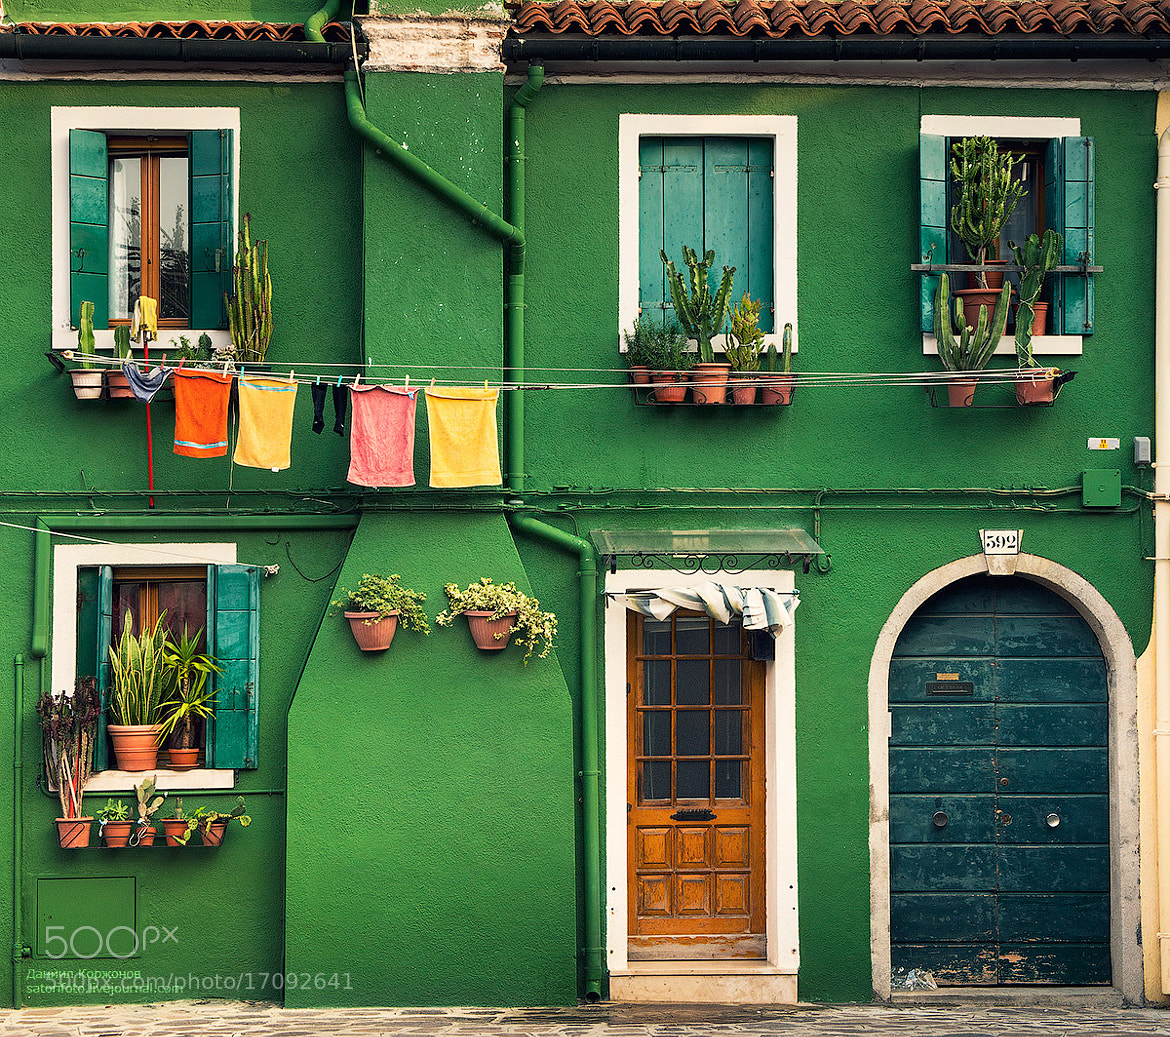 Photograph Burano by Daniel Korzhonov on 500px